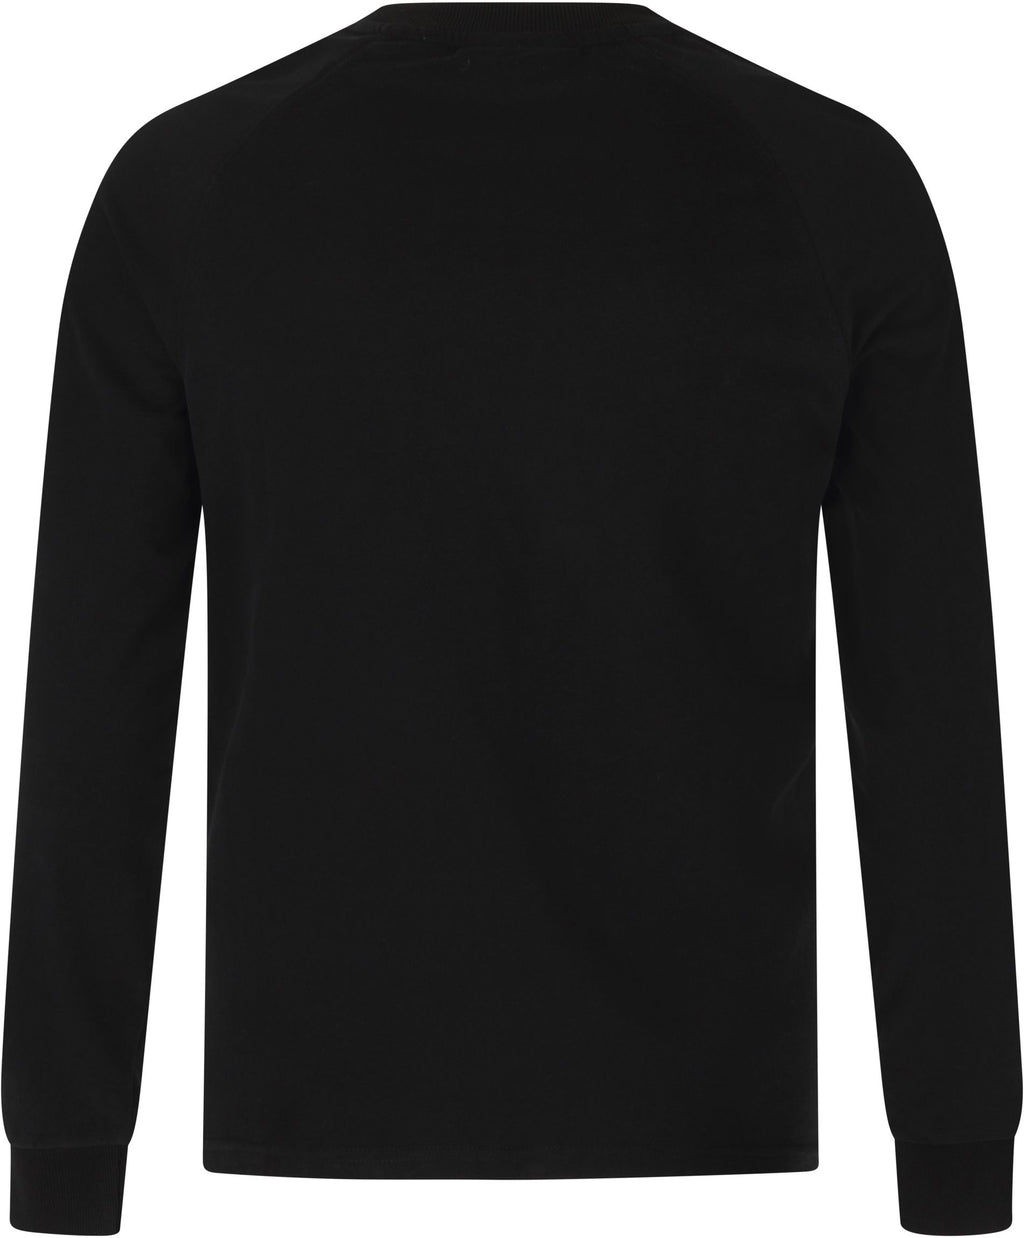 Fila Felice 2 Raglan Long Sleeve T-Shirt Black